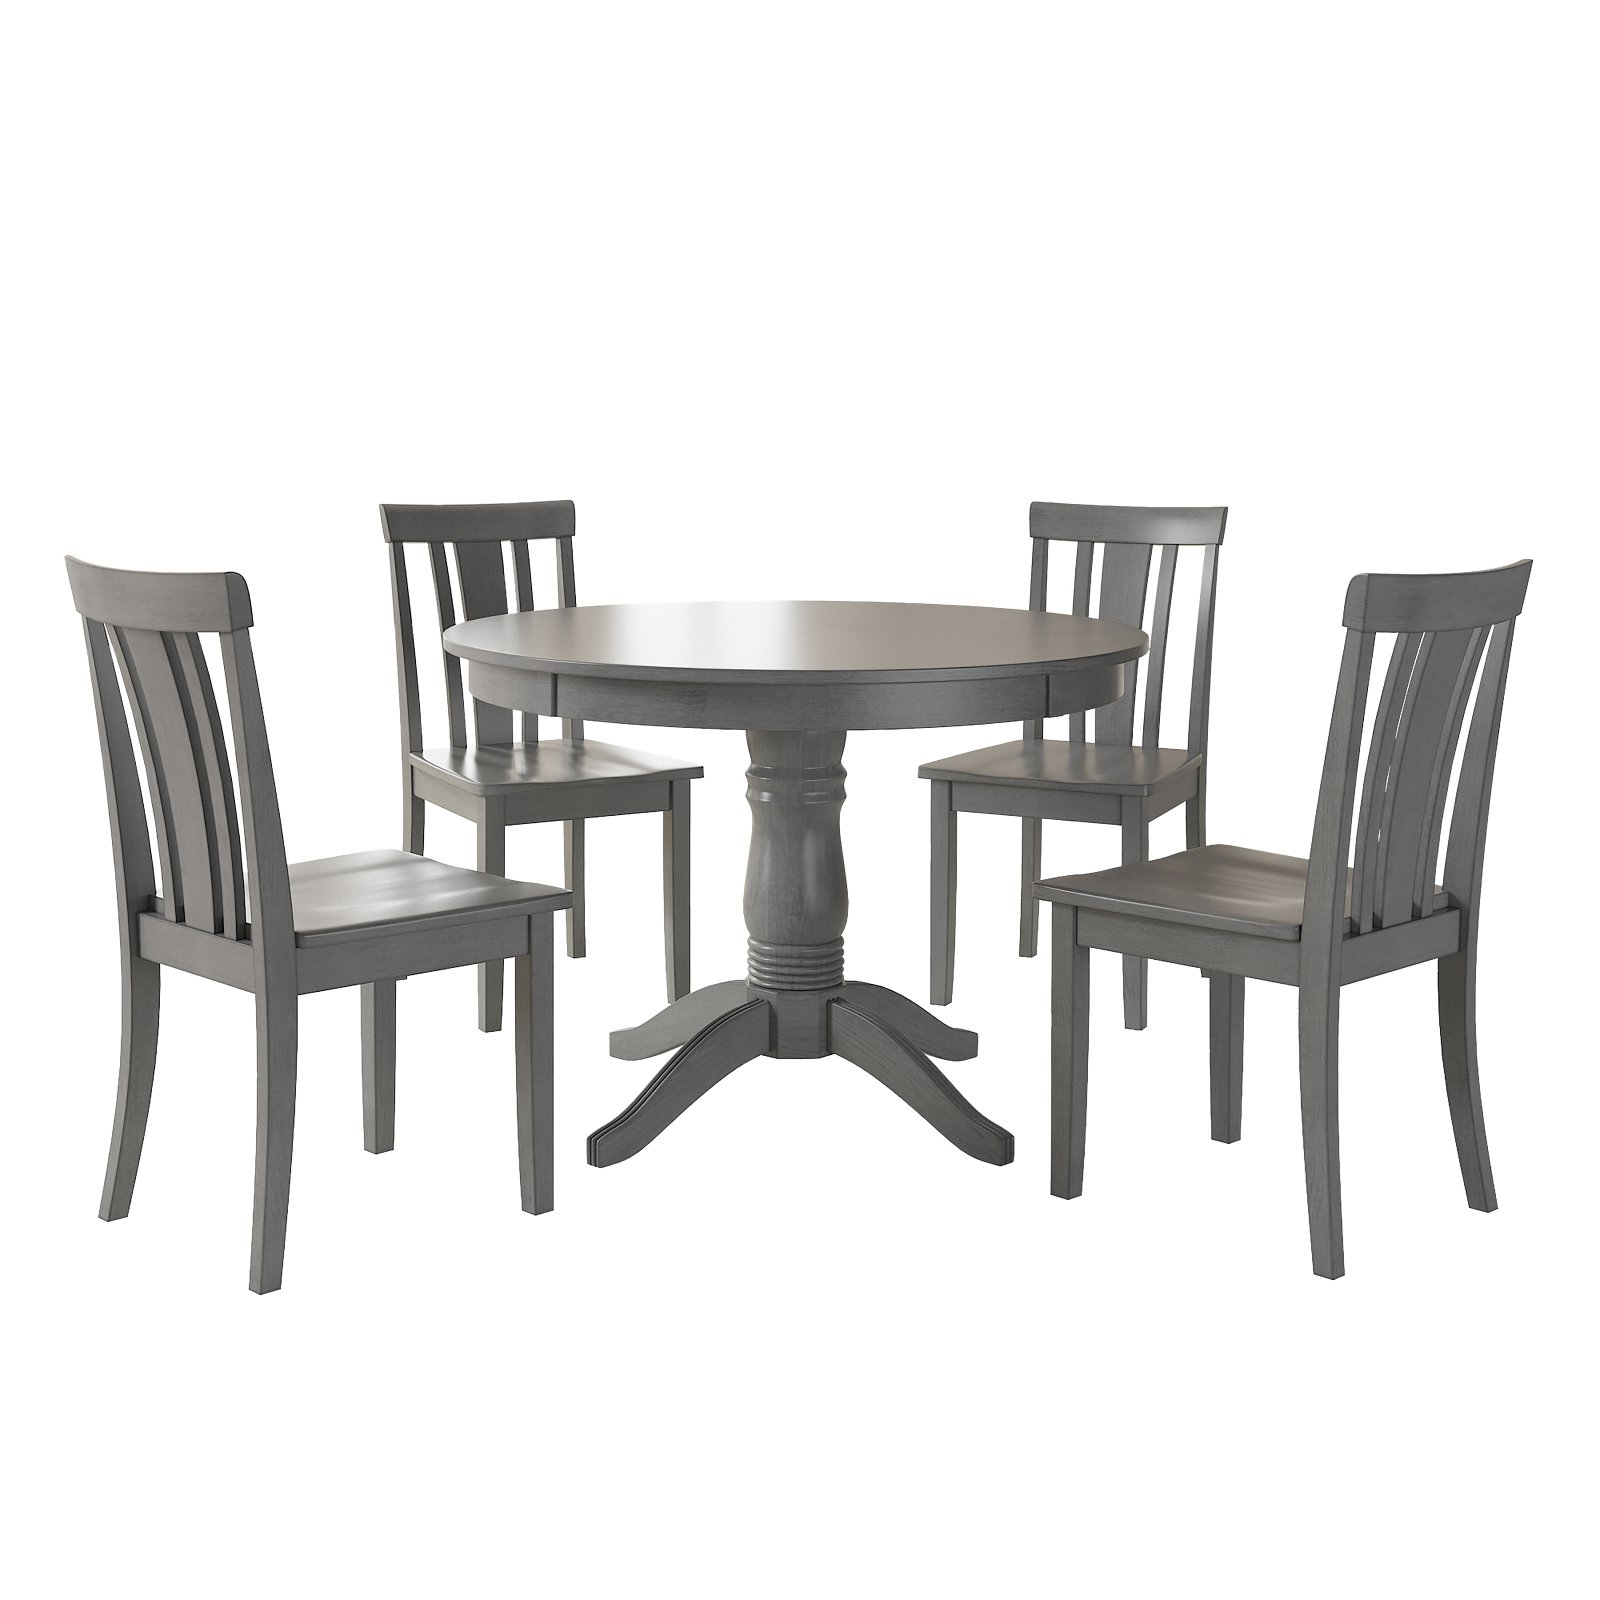 Awesome Farmhouse 5 Piece Dining Set